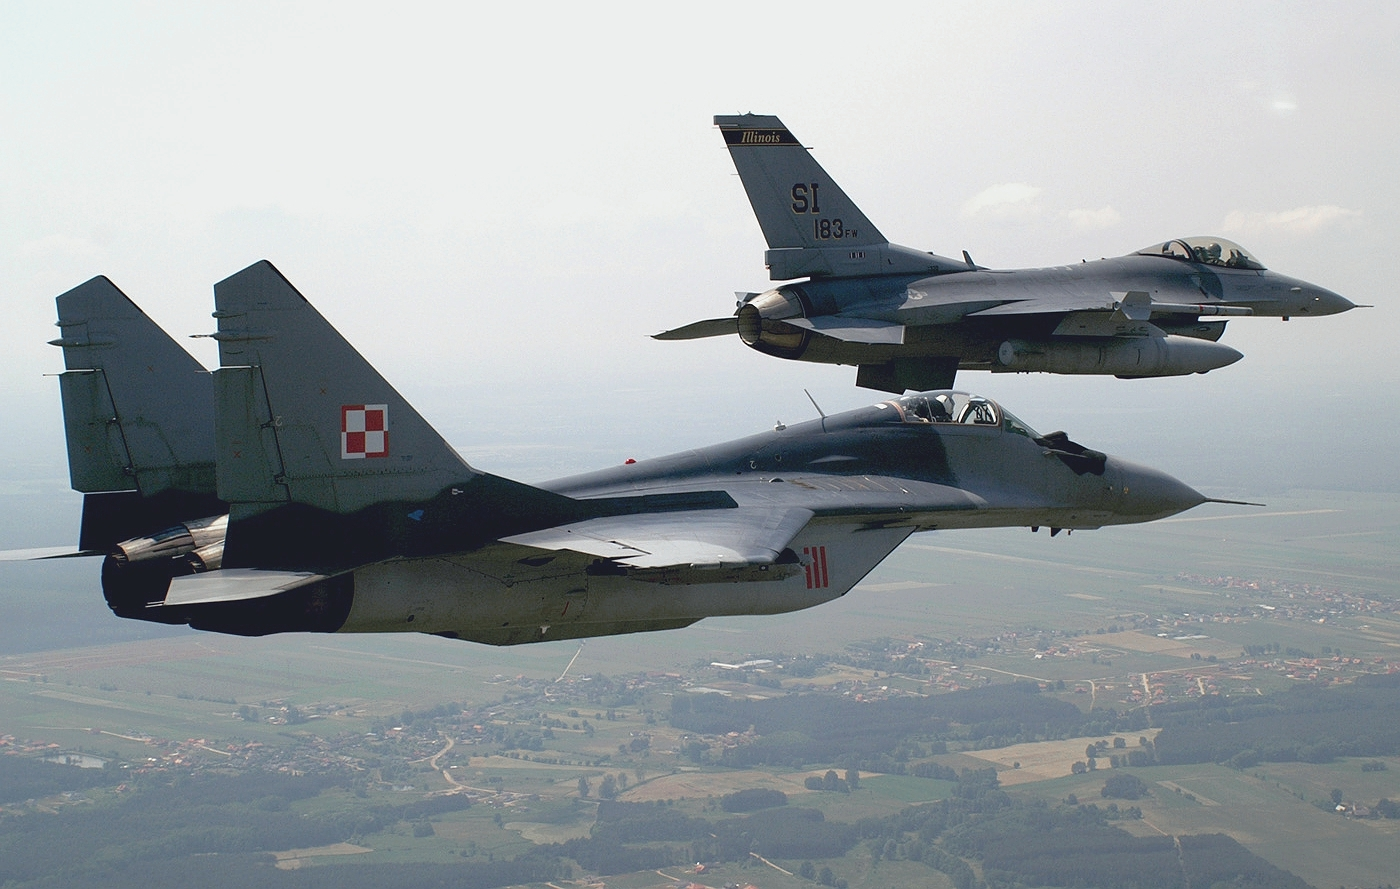 http://upload.wikimedia.org/wikipedia/commons/a/ac/U.S._F-16C_Fighting_Falcon_and_Polish_Mikoyan-Gurevich_MiG-29A_over_Krzesiny_air_base%2C_Poland_-_20050615.jpg